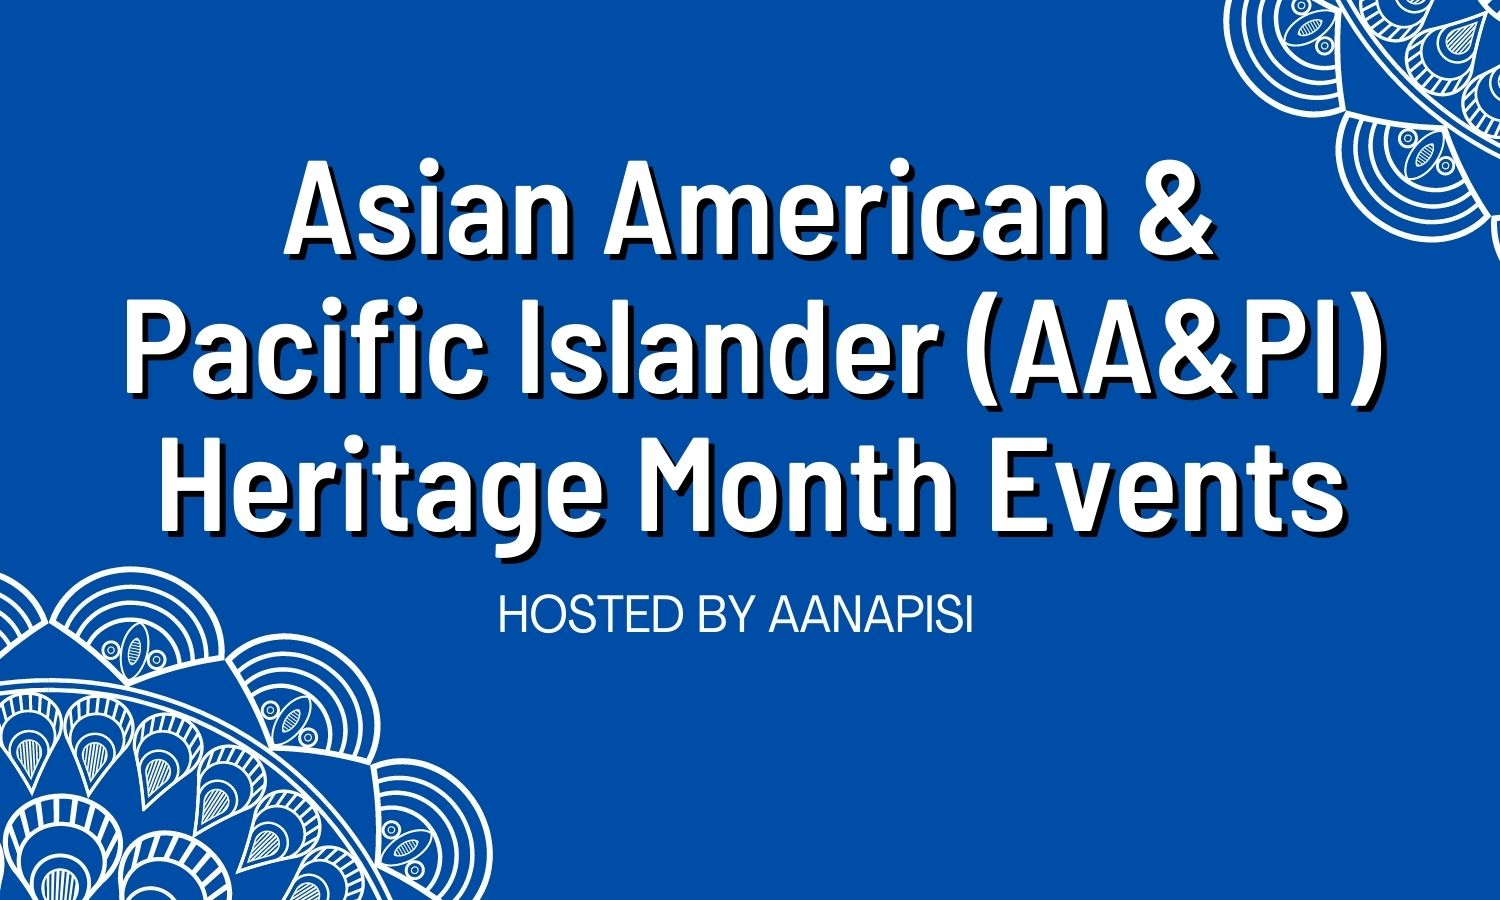 Asian American & Pacific Islander (AA&PI) Heritage Month Events